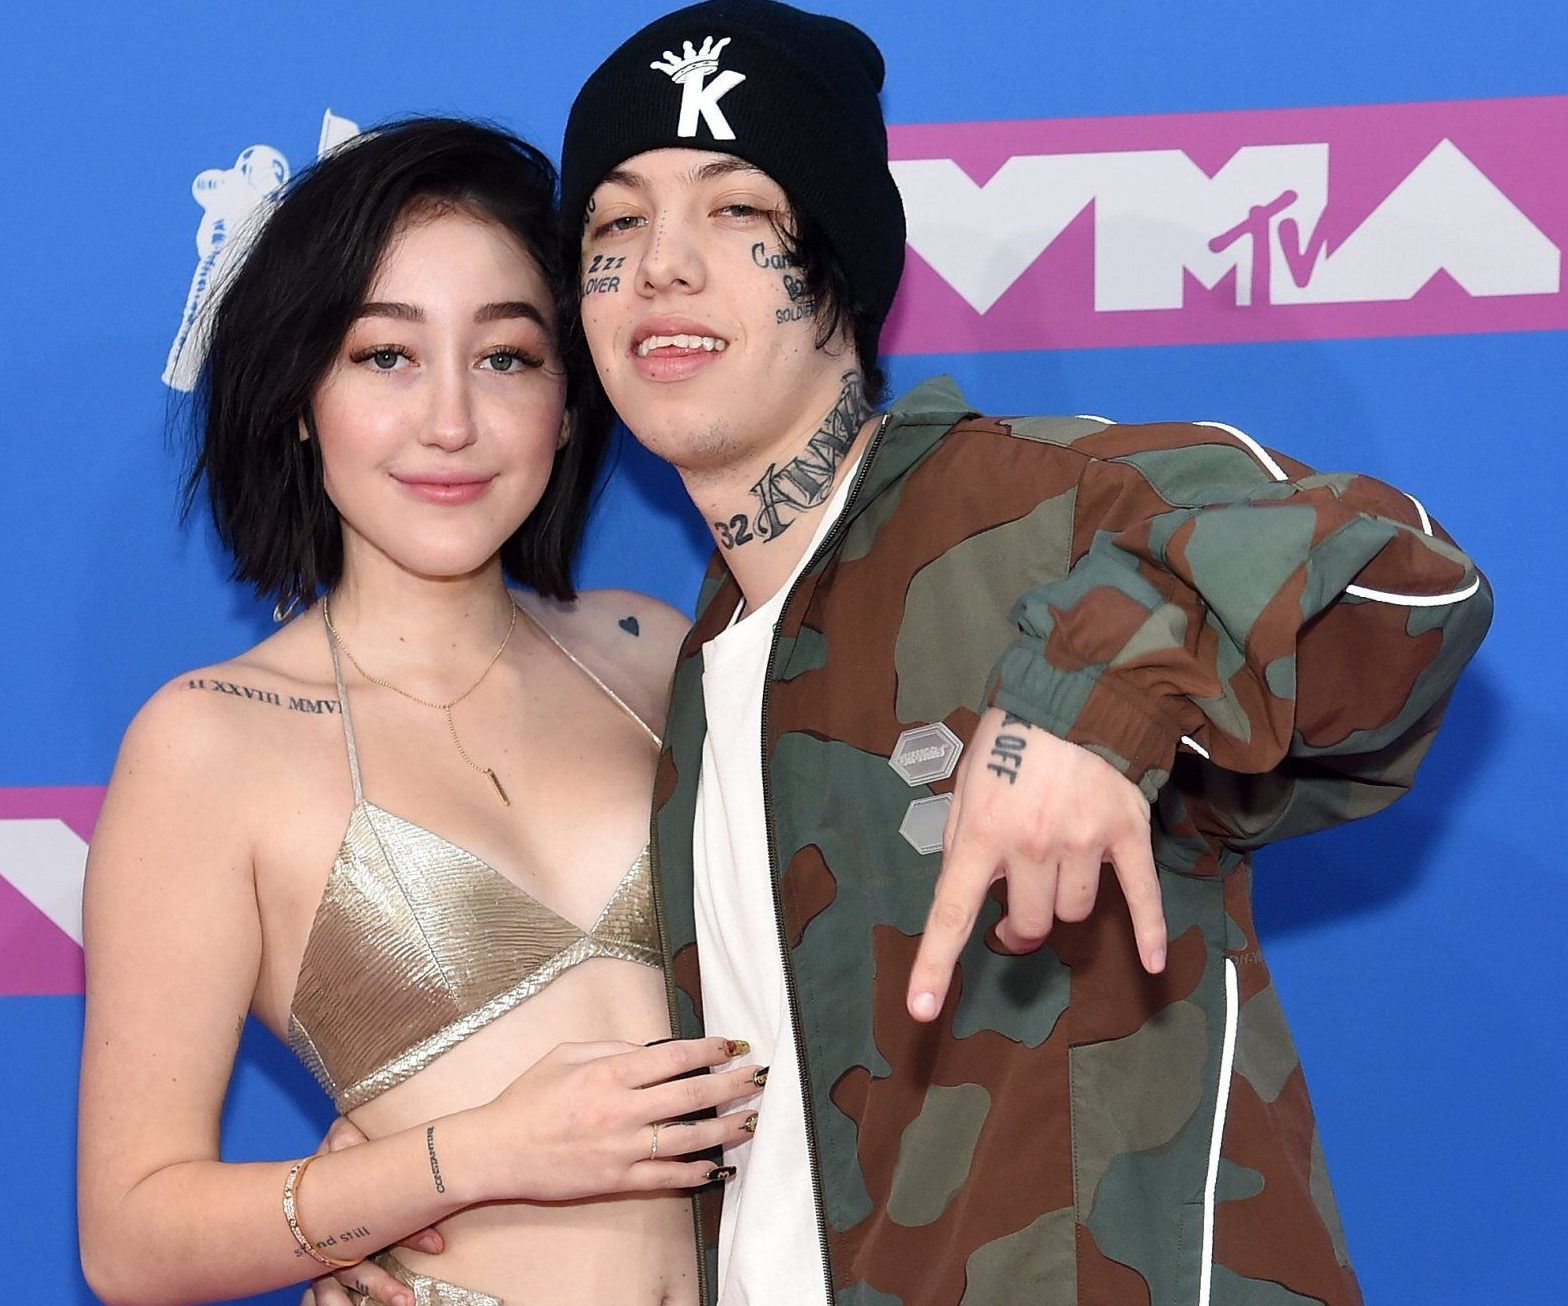 Noah Cyrus calls relationship with Lil Xan her 'biggest mistake' after he dumped her on Instagram